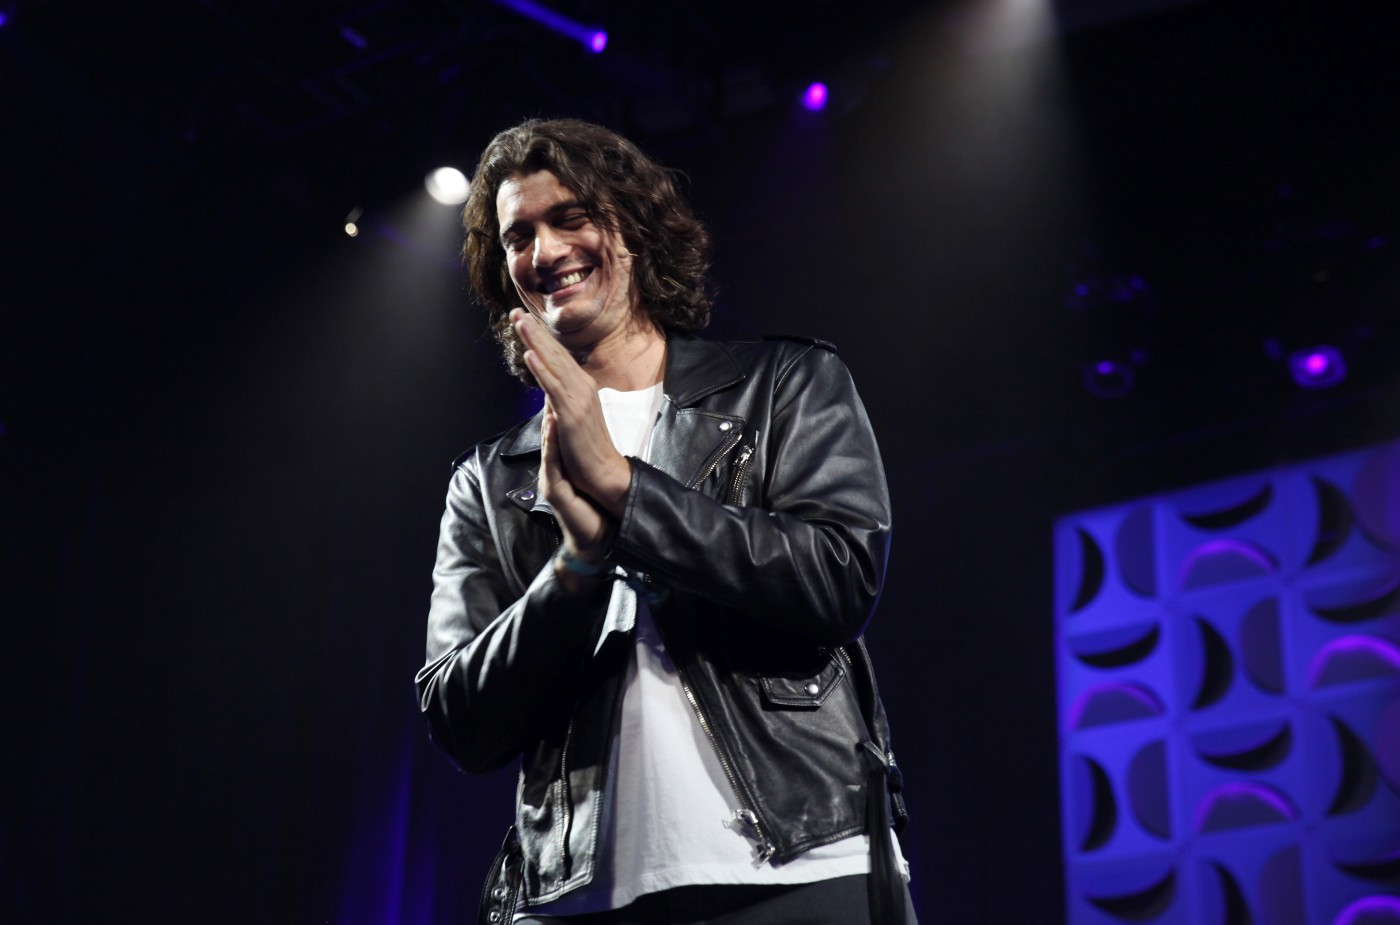 Adam Neumann, founder of WeWork, speaks on stage at the WeWork San Francisco Creator Awards.